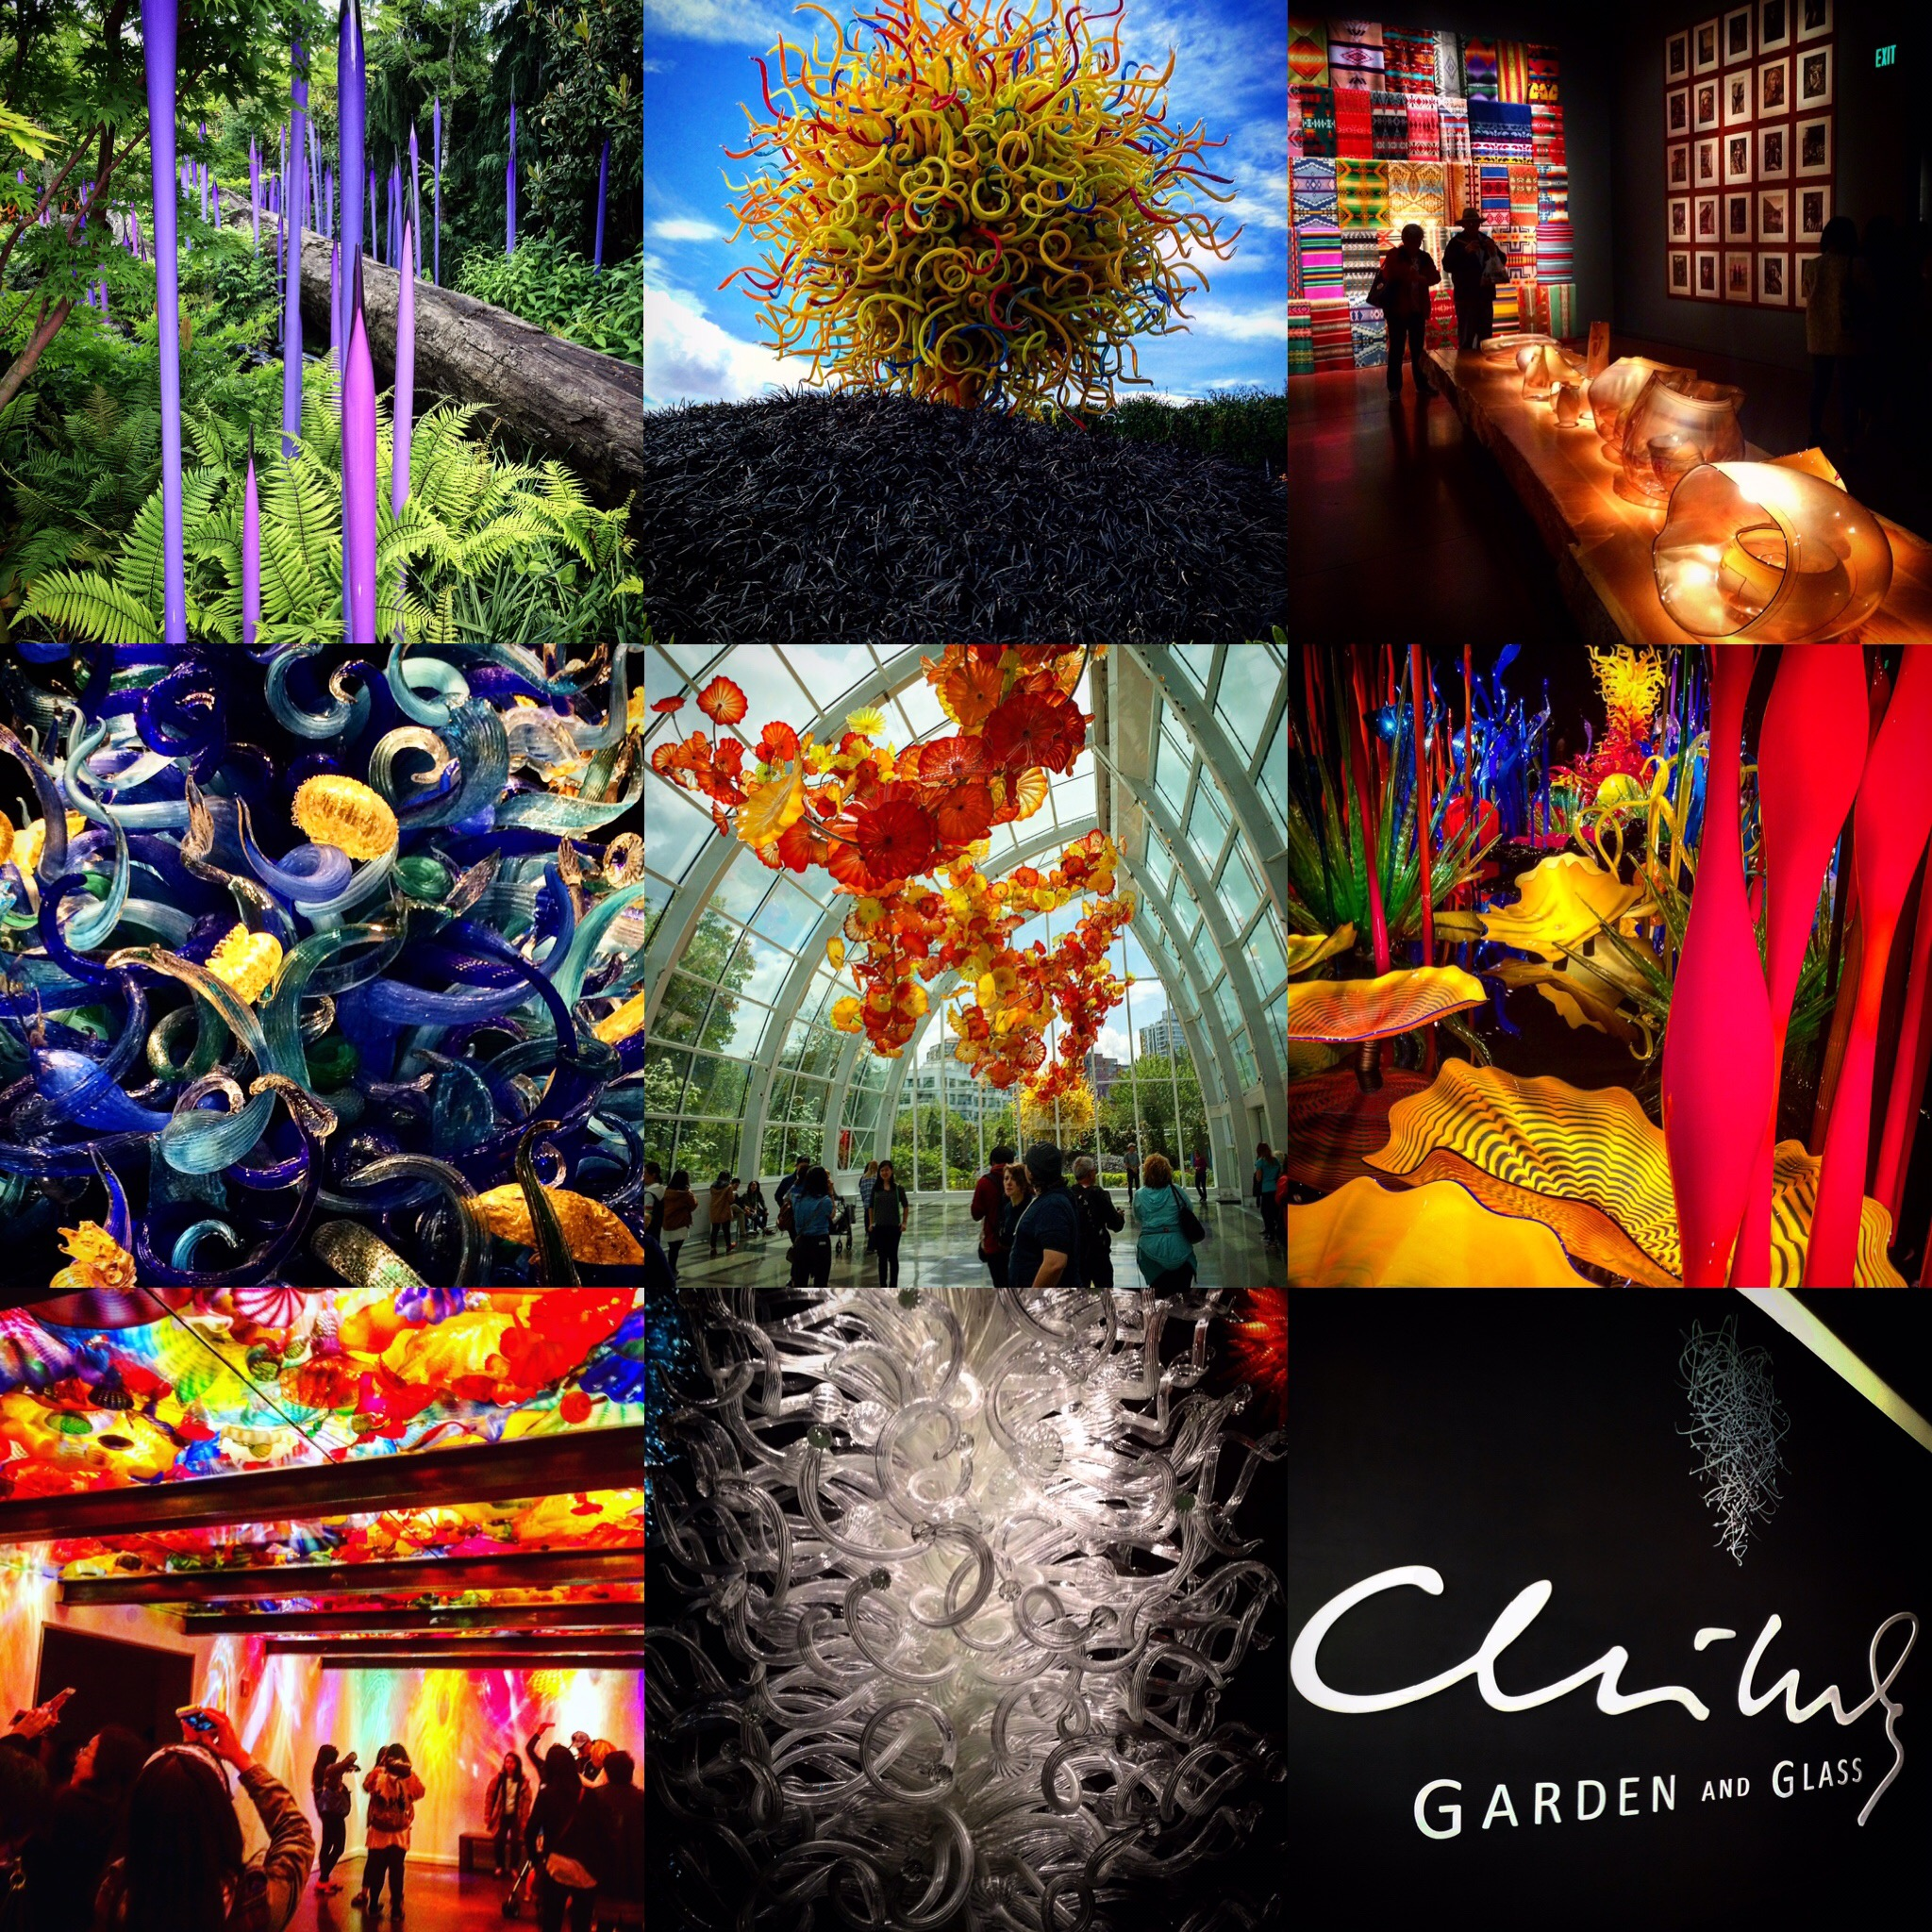 Chihuly Garden Glass Seattle Washington WA ChihulyGG JoeyMcGirr Joey McGirr Blog Travel Traveling Blogger Blogging Collage Art Museum Exhibit Artist Dale Center Space Needle 1